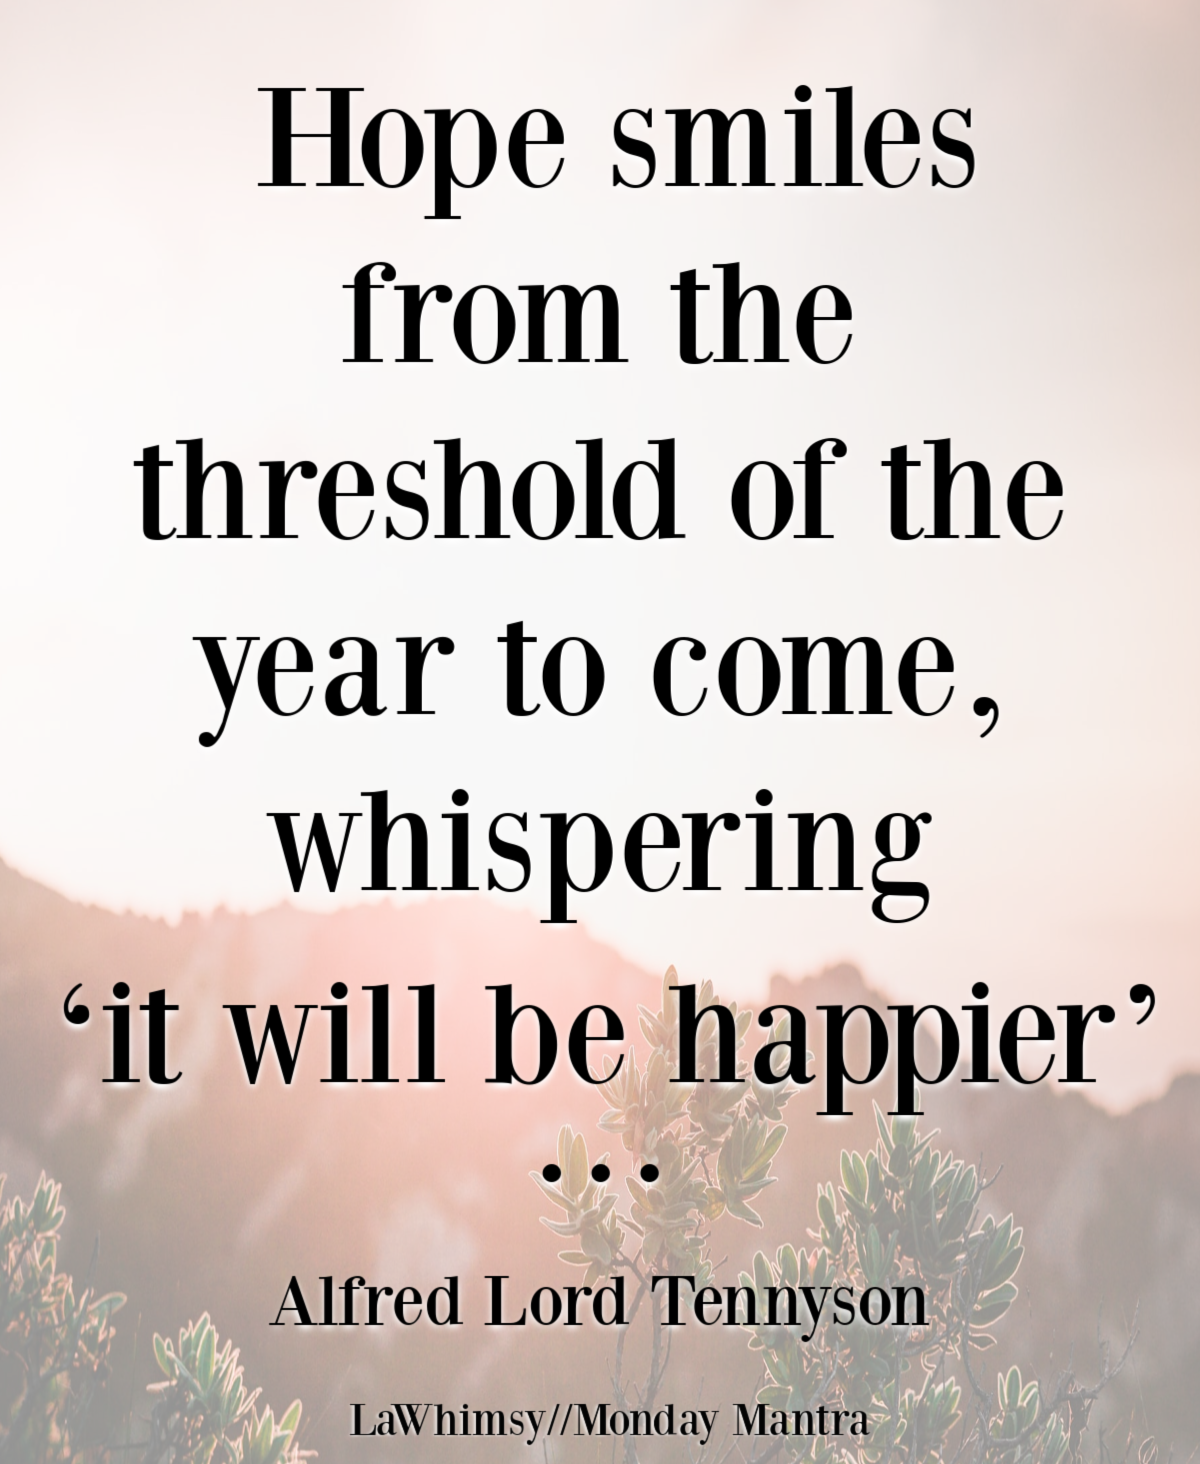 Hope smiles from the threshold of the year to come, whispering 'it will be happier' Tennyson quote Monday Mantra 289 via LaWhimsy